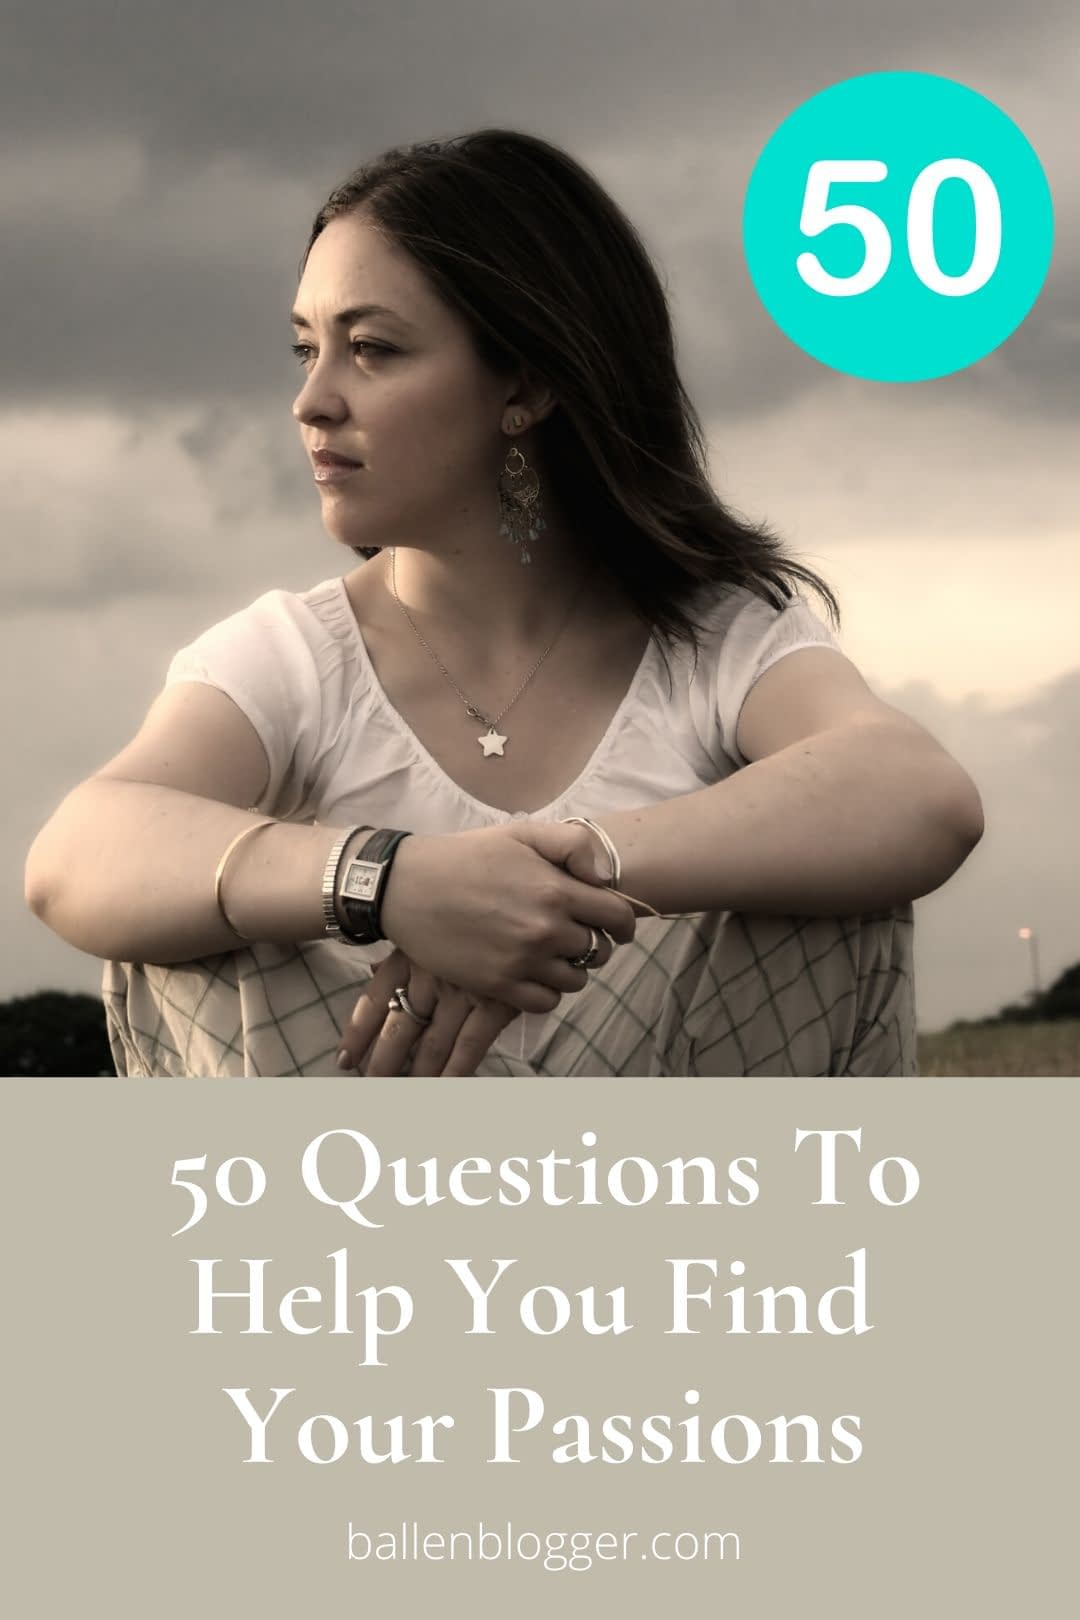 These thought-provoking questions can be life-changing if you truly spend some time in the answers. They can guide you to where you should be and go in your life.